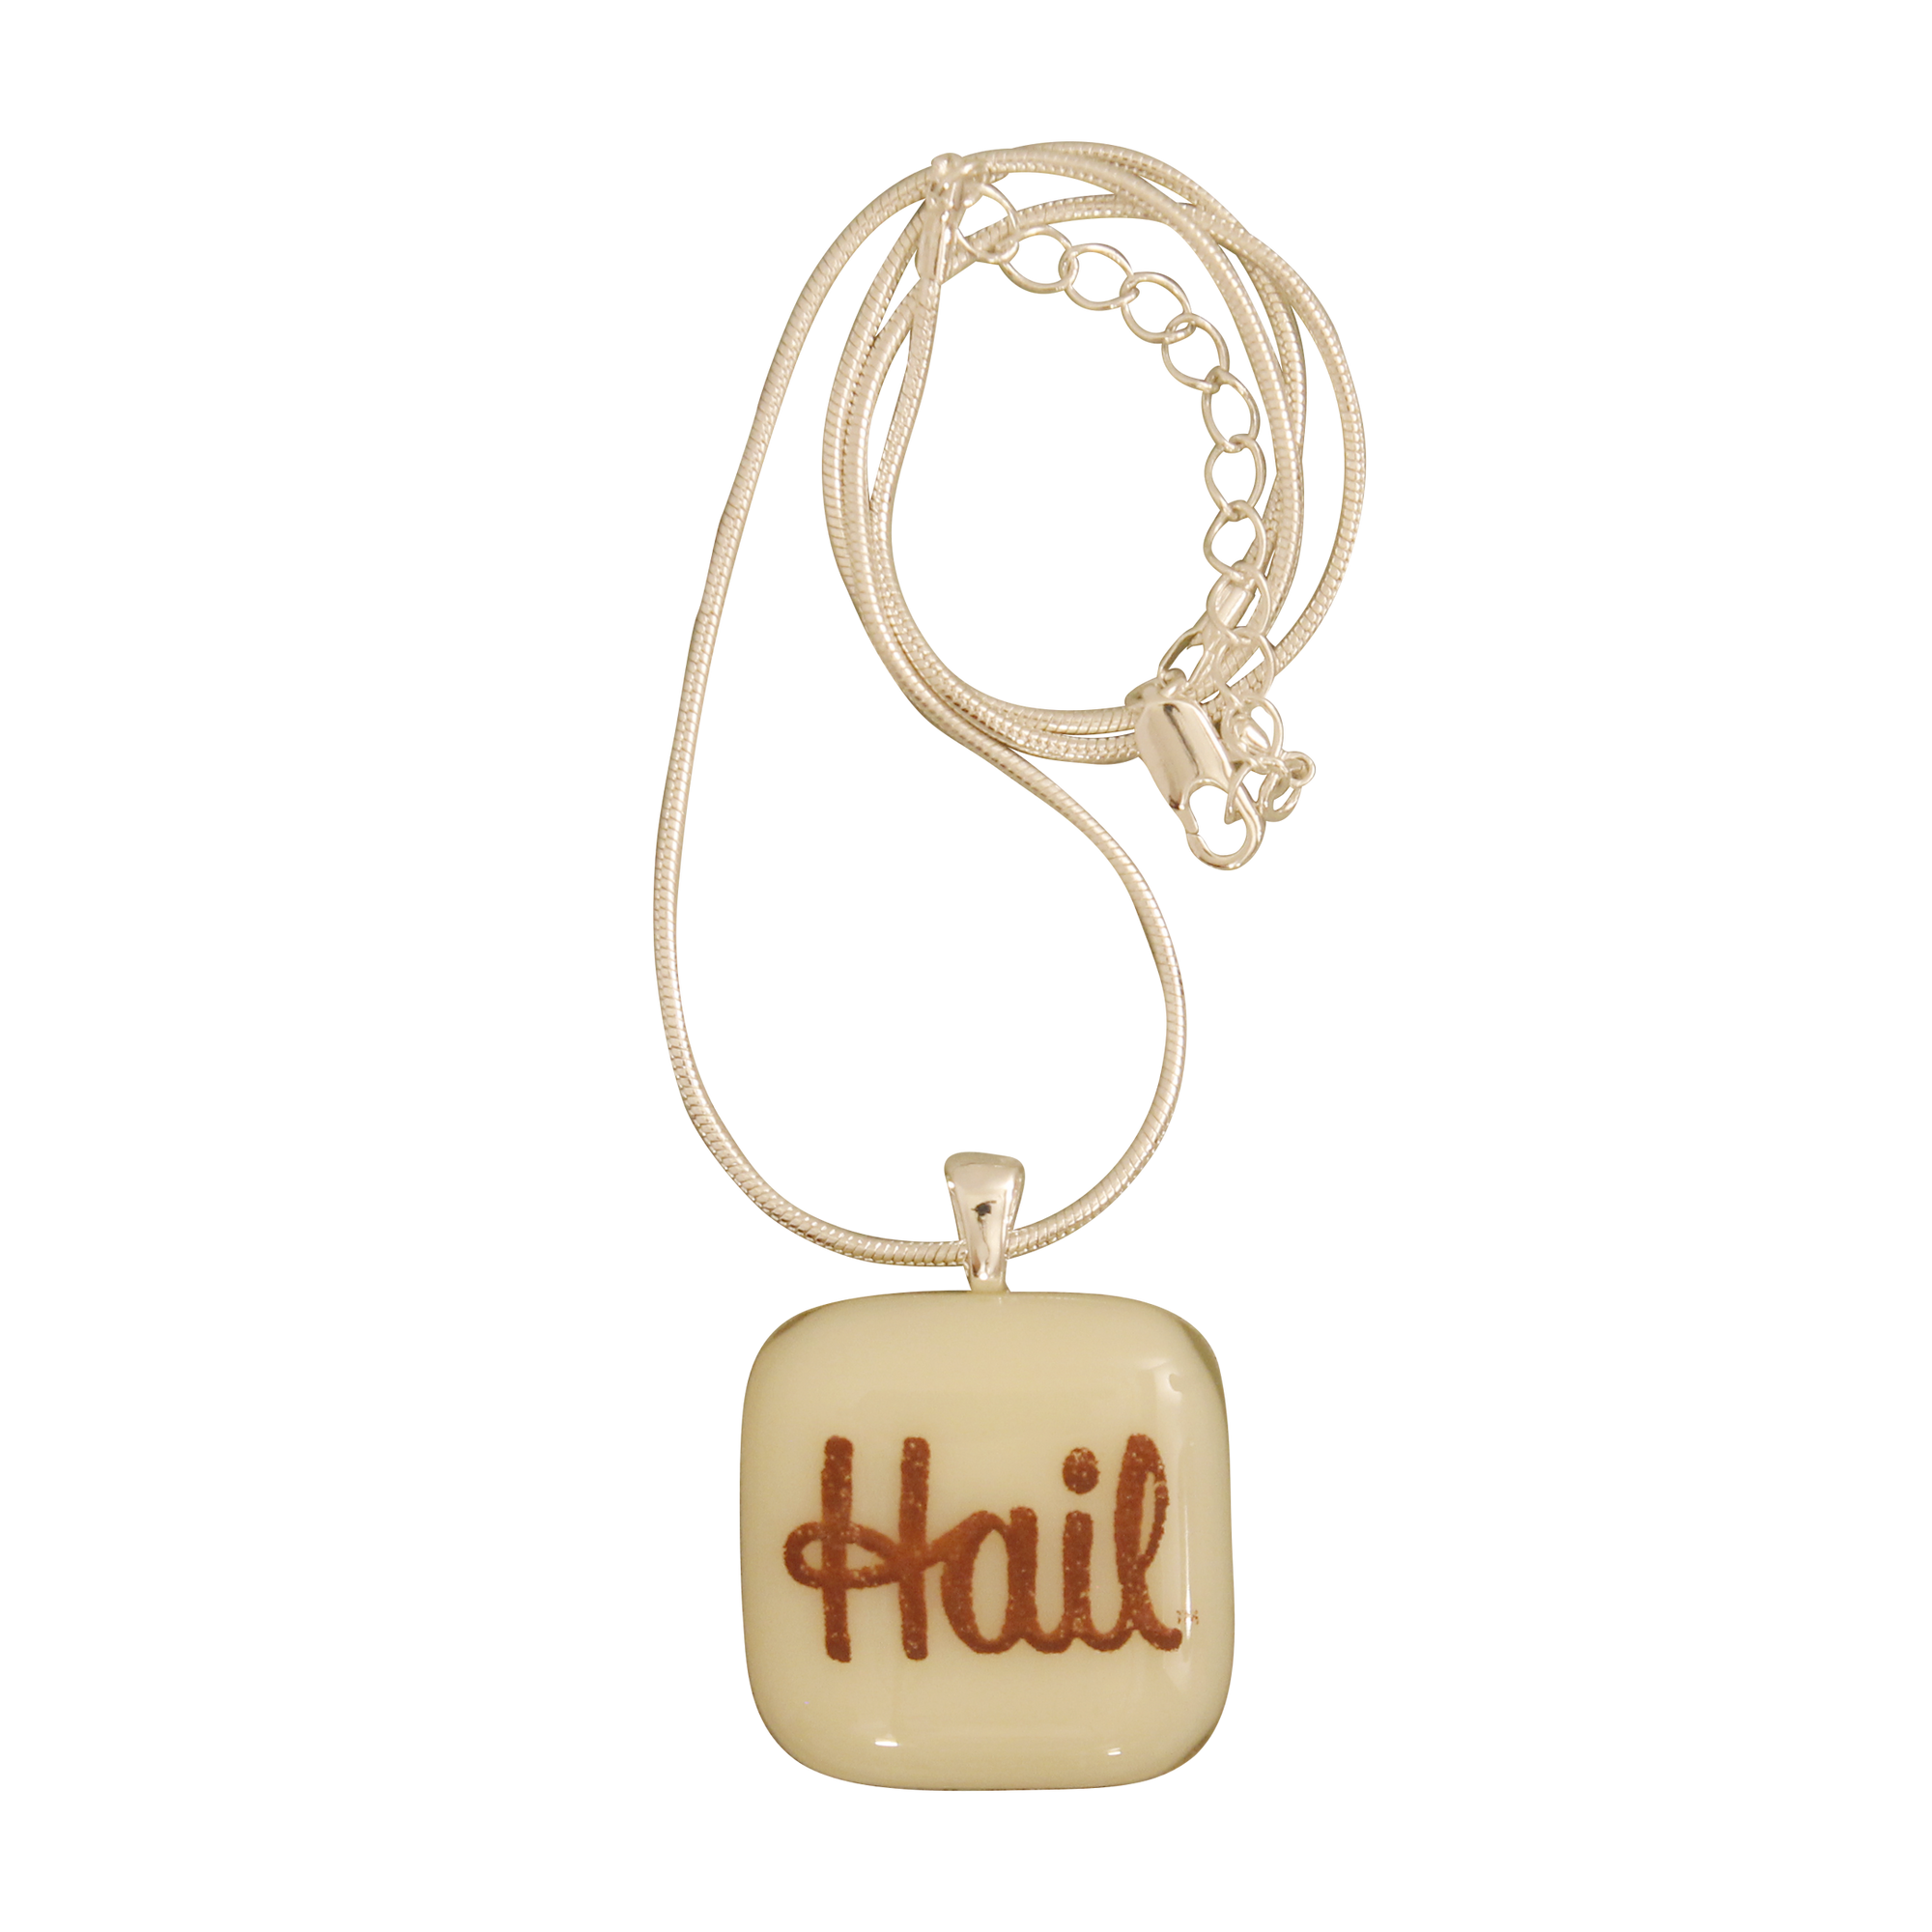 UNIVERSITY OF MICHIGAN Hail Michigan Glass Necklace